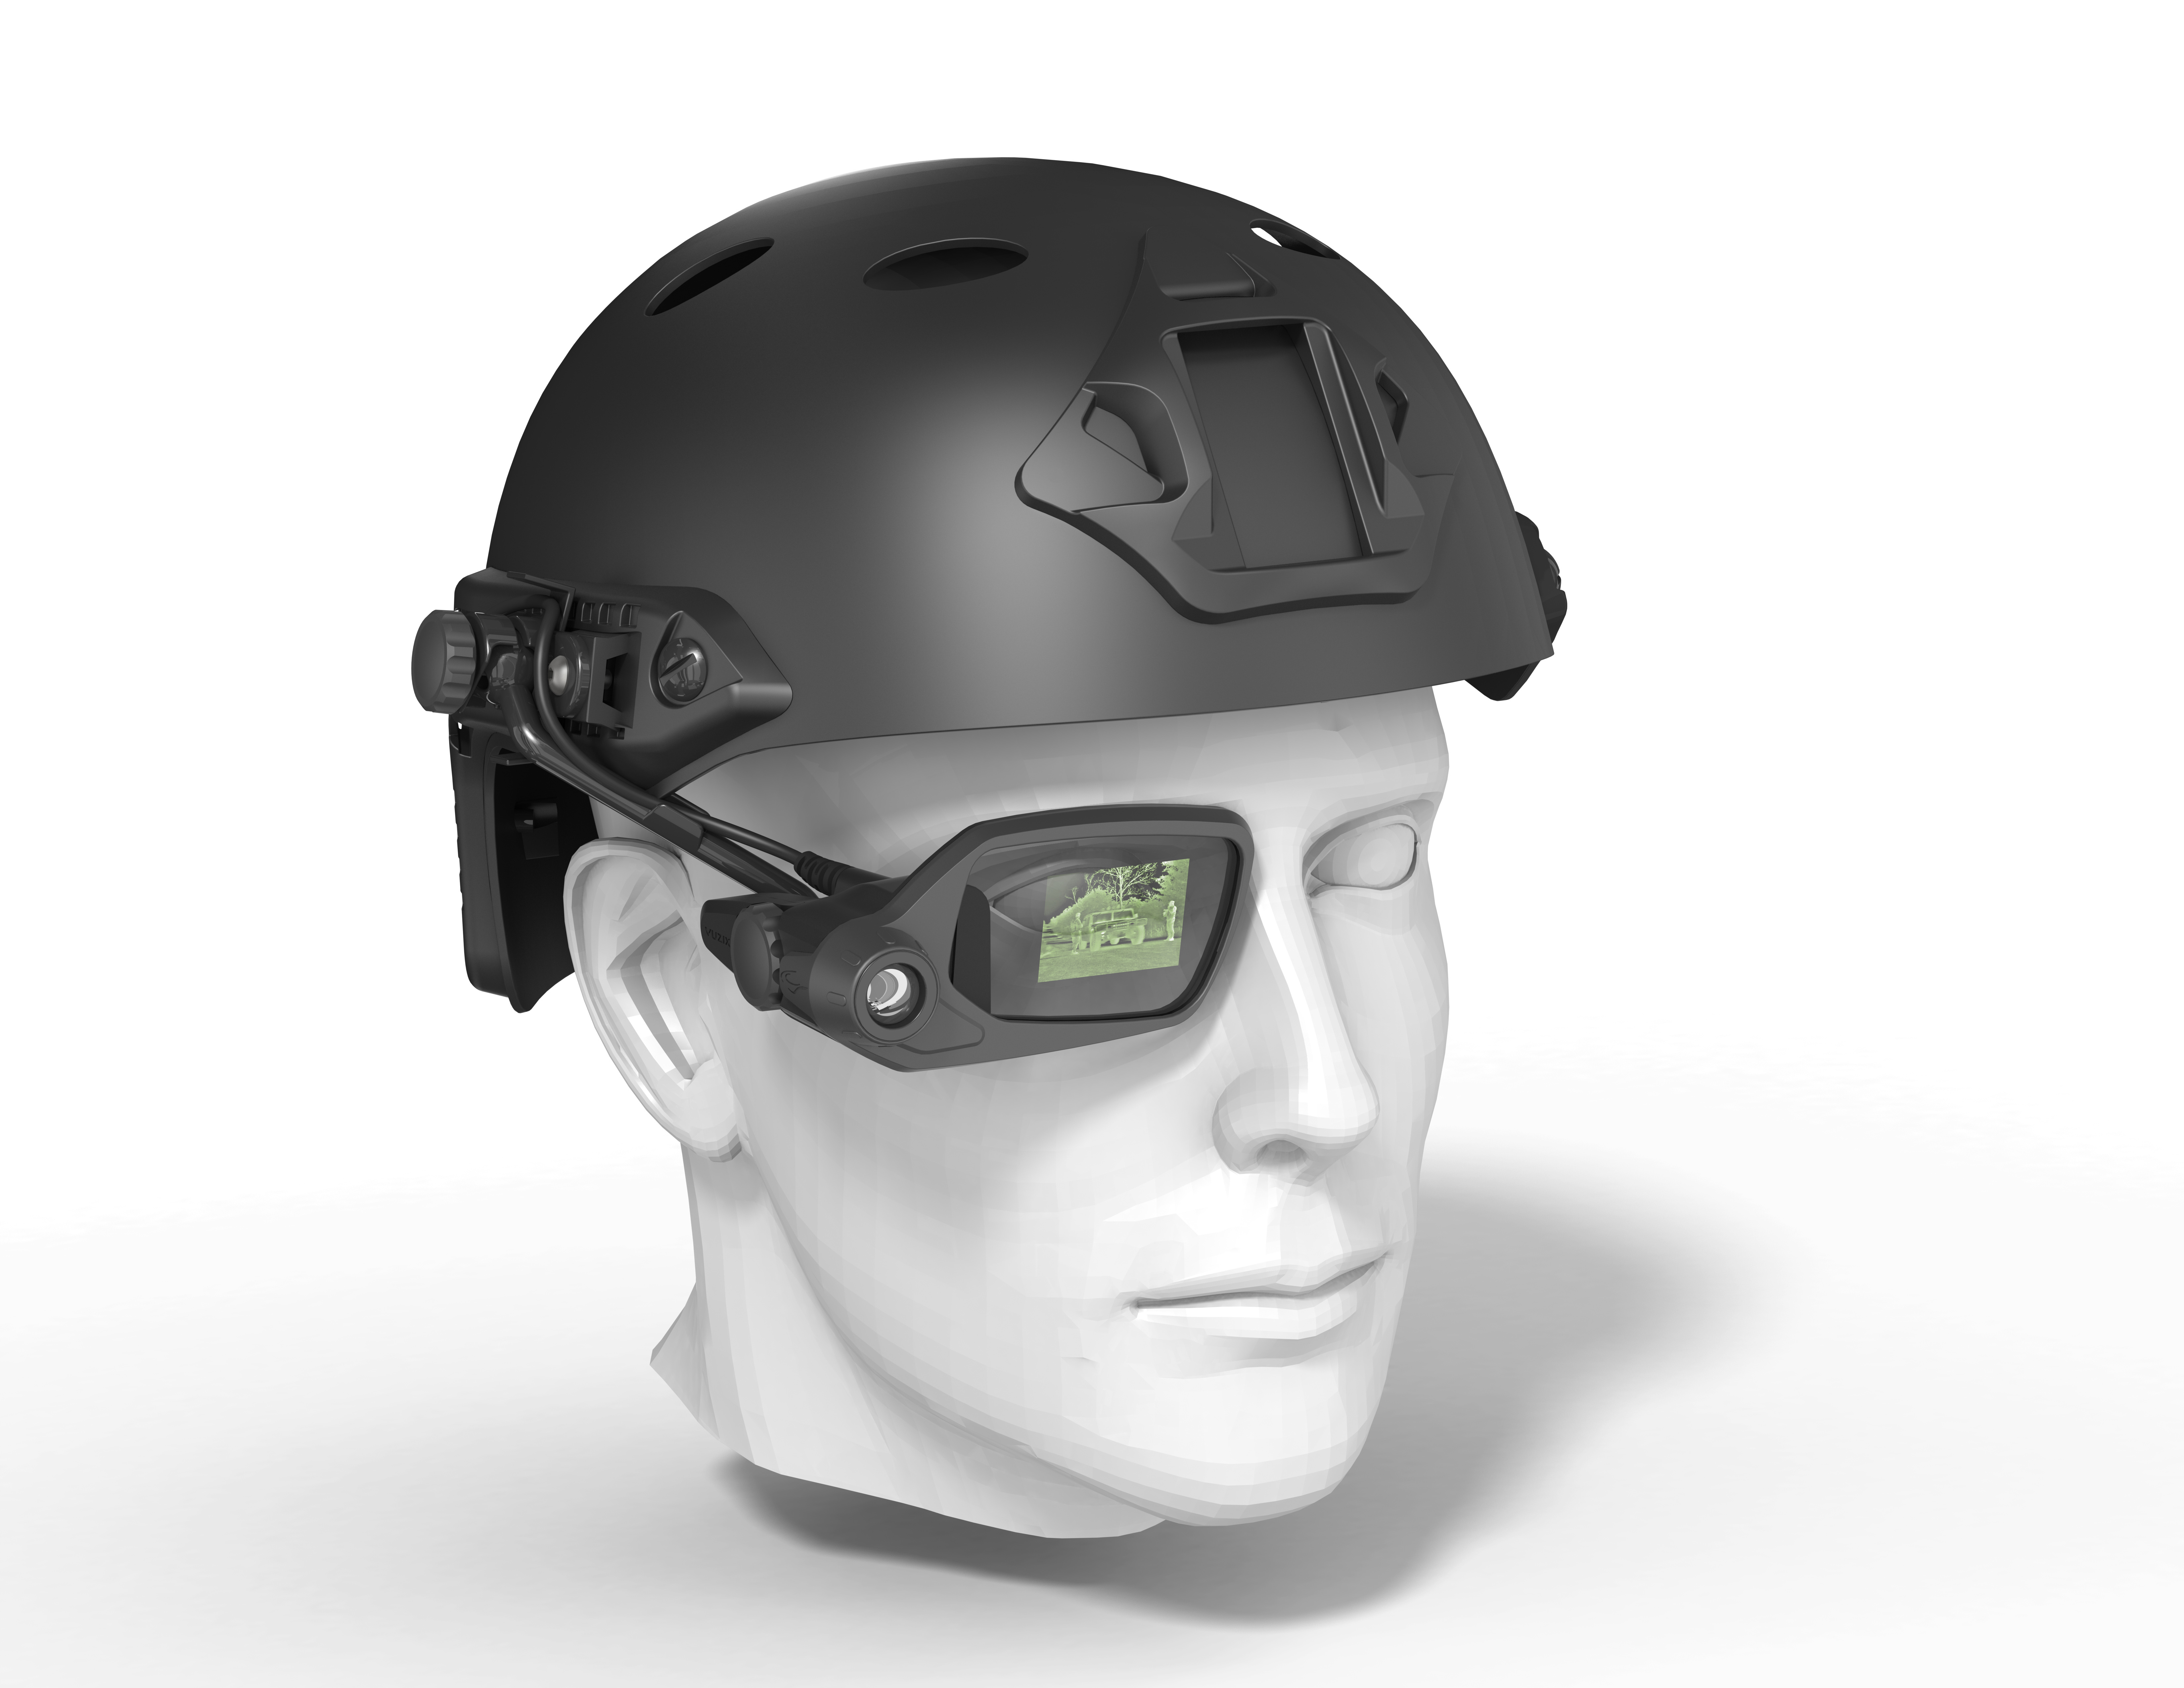 Vuzix envisions military applications for its video glasses, including night vision.